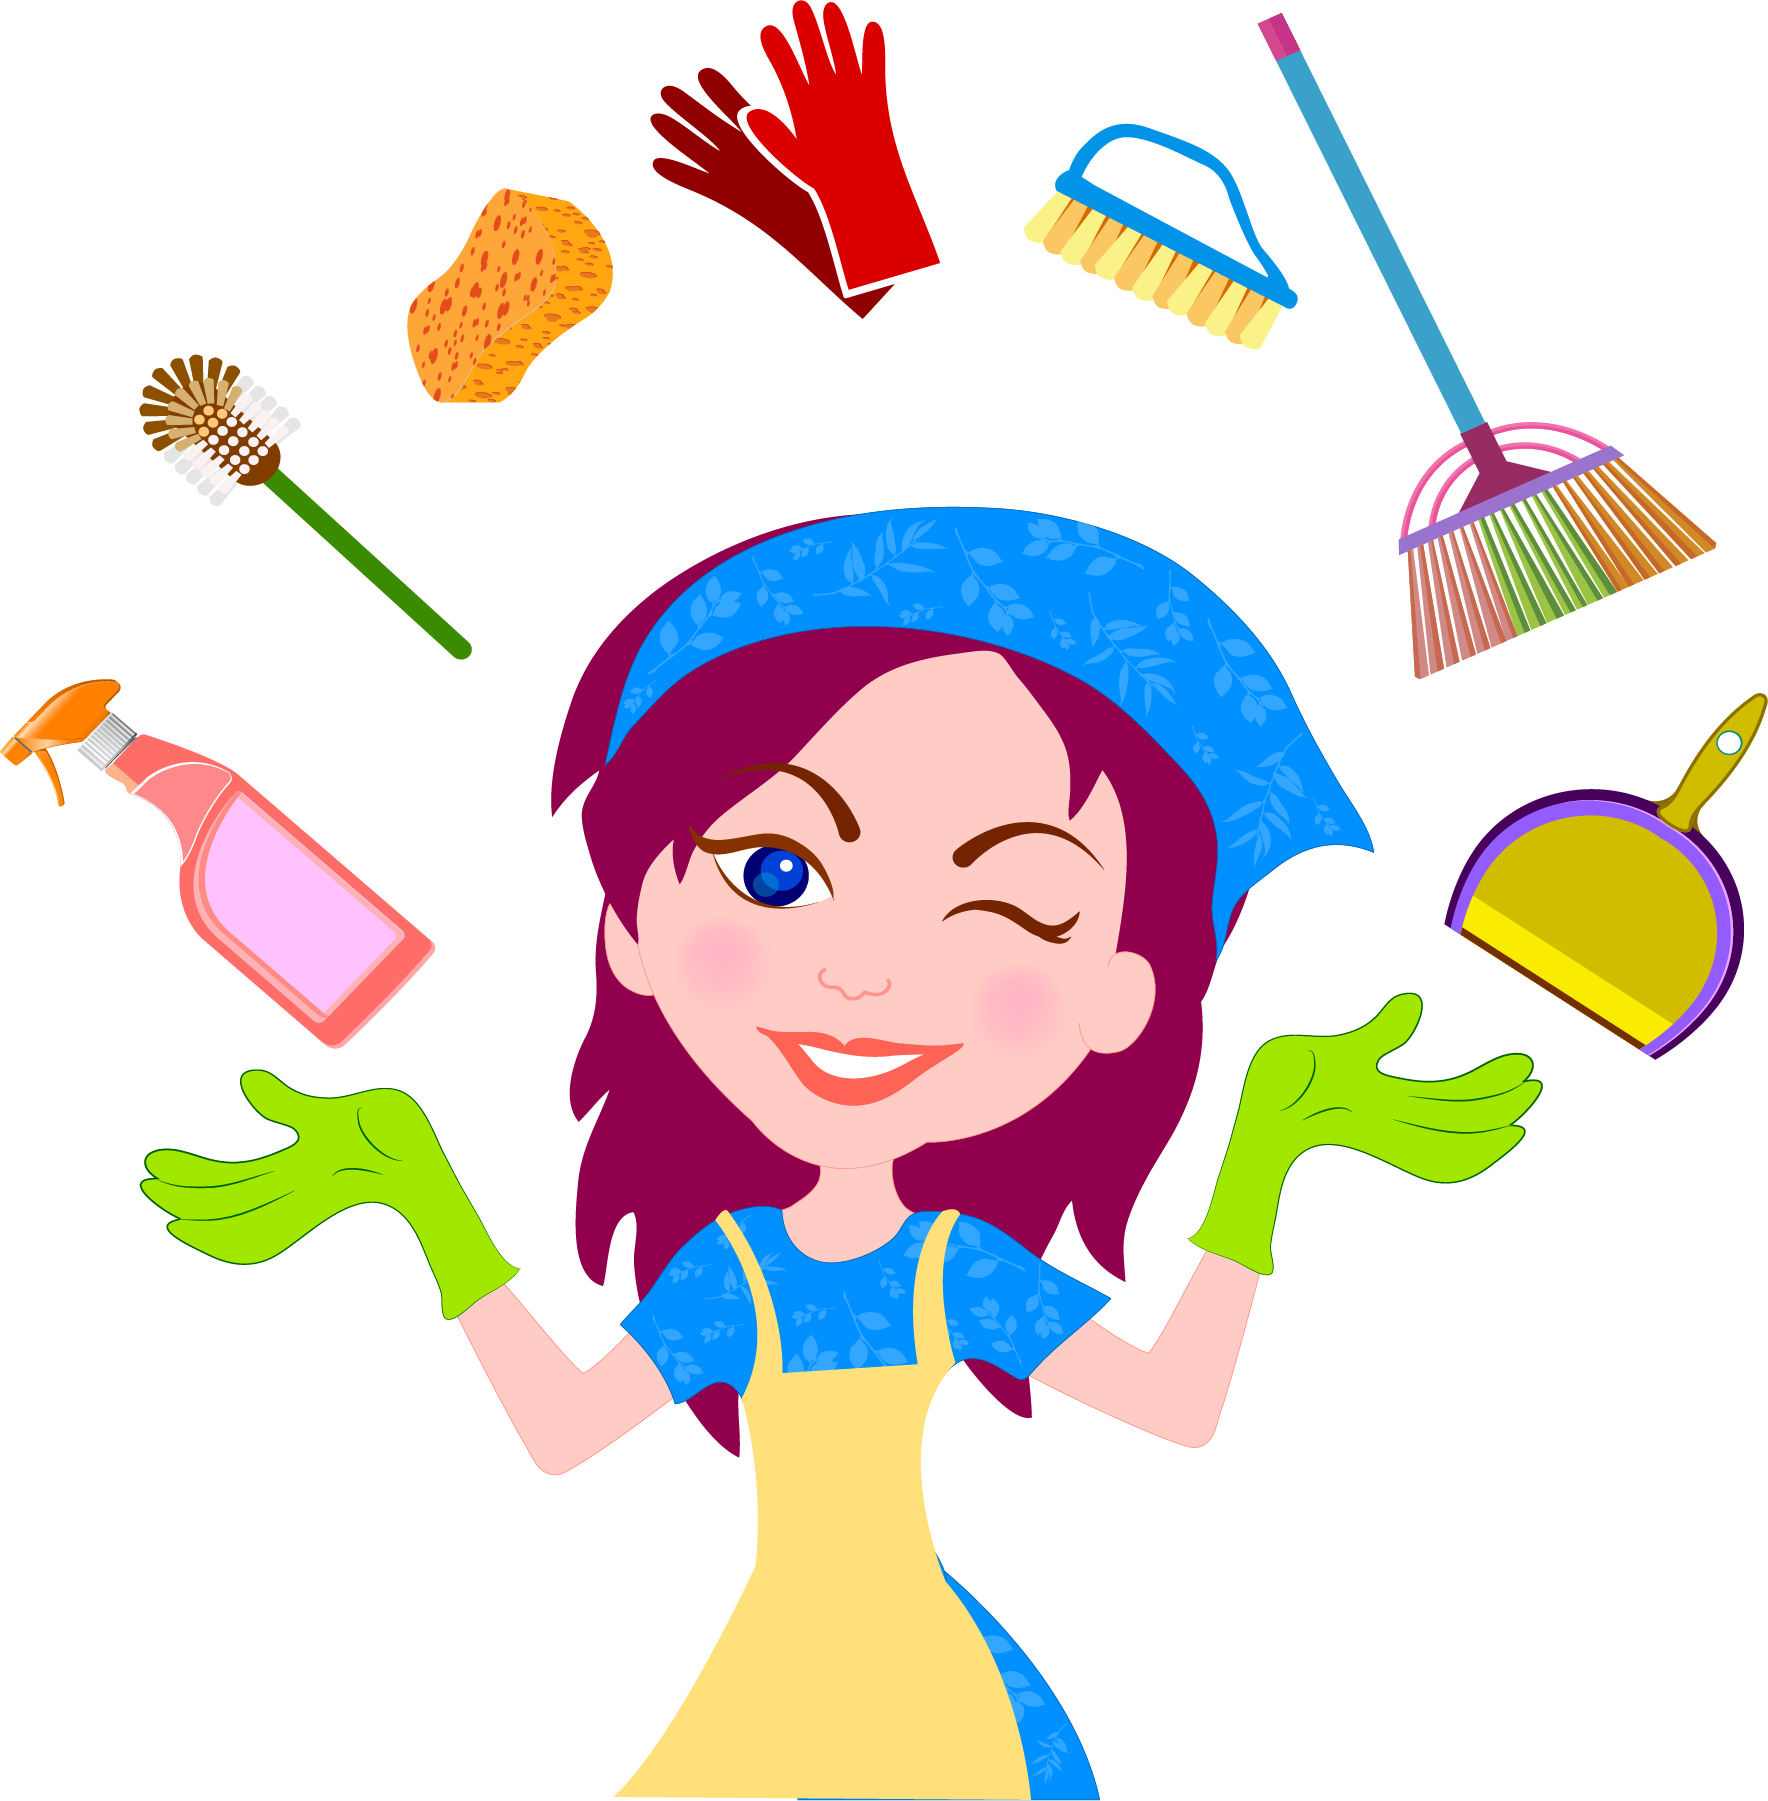 Maid clipart clean. Cleaner service cleaning housekeeping